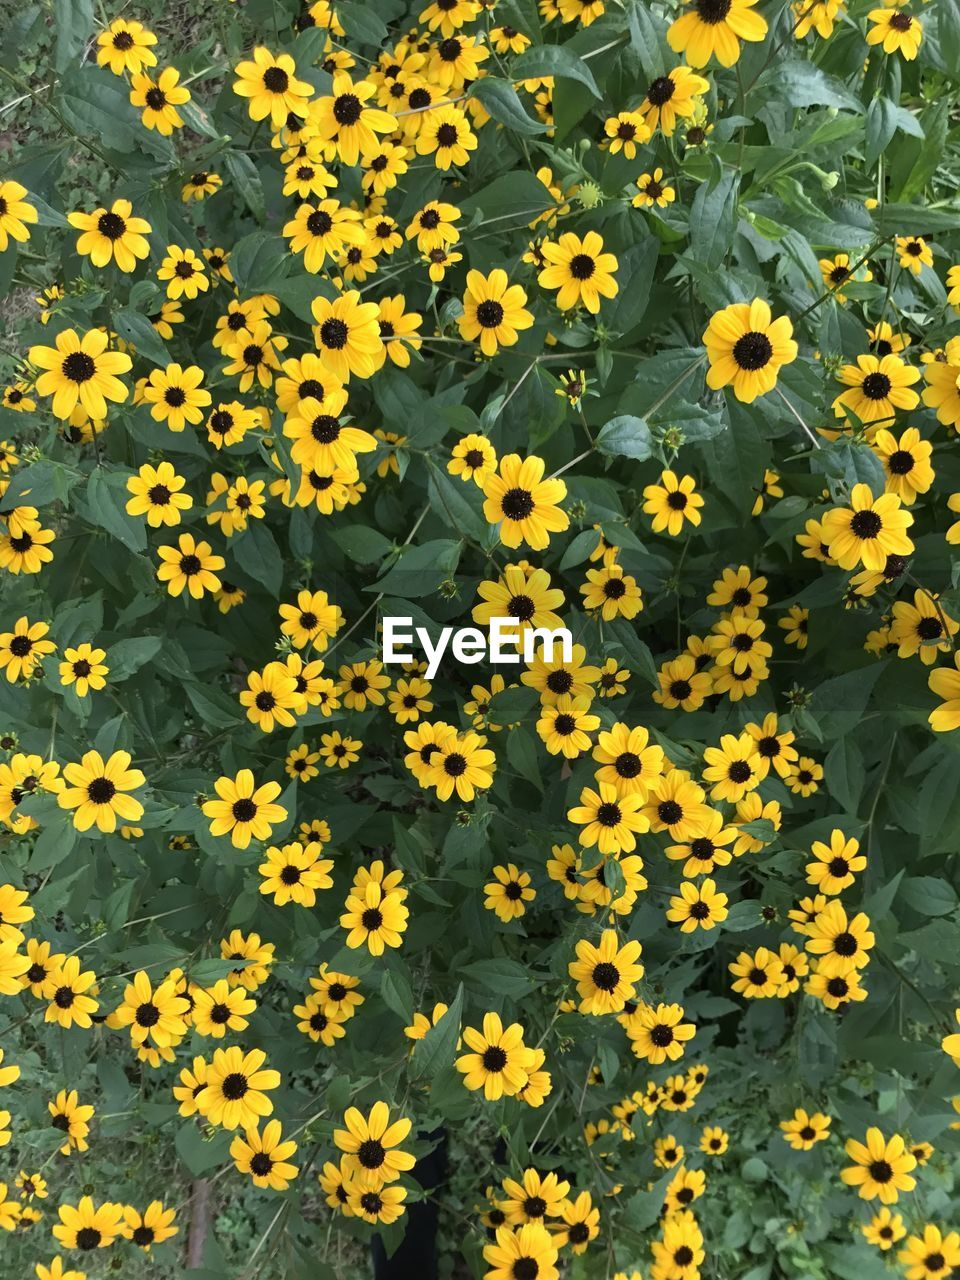 flower, yellow, fragility, growth, petal, freshness, blooming, nature, plant, beauty in nature, flower head, day, outdoors, field, no people, leaf, backgrounds, black-eyed susan, close-up